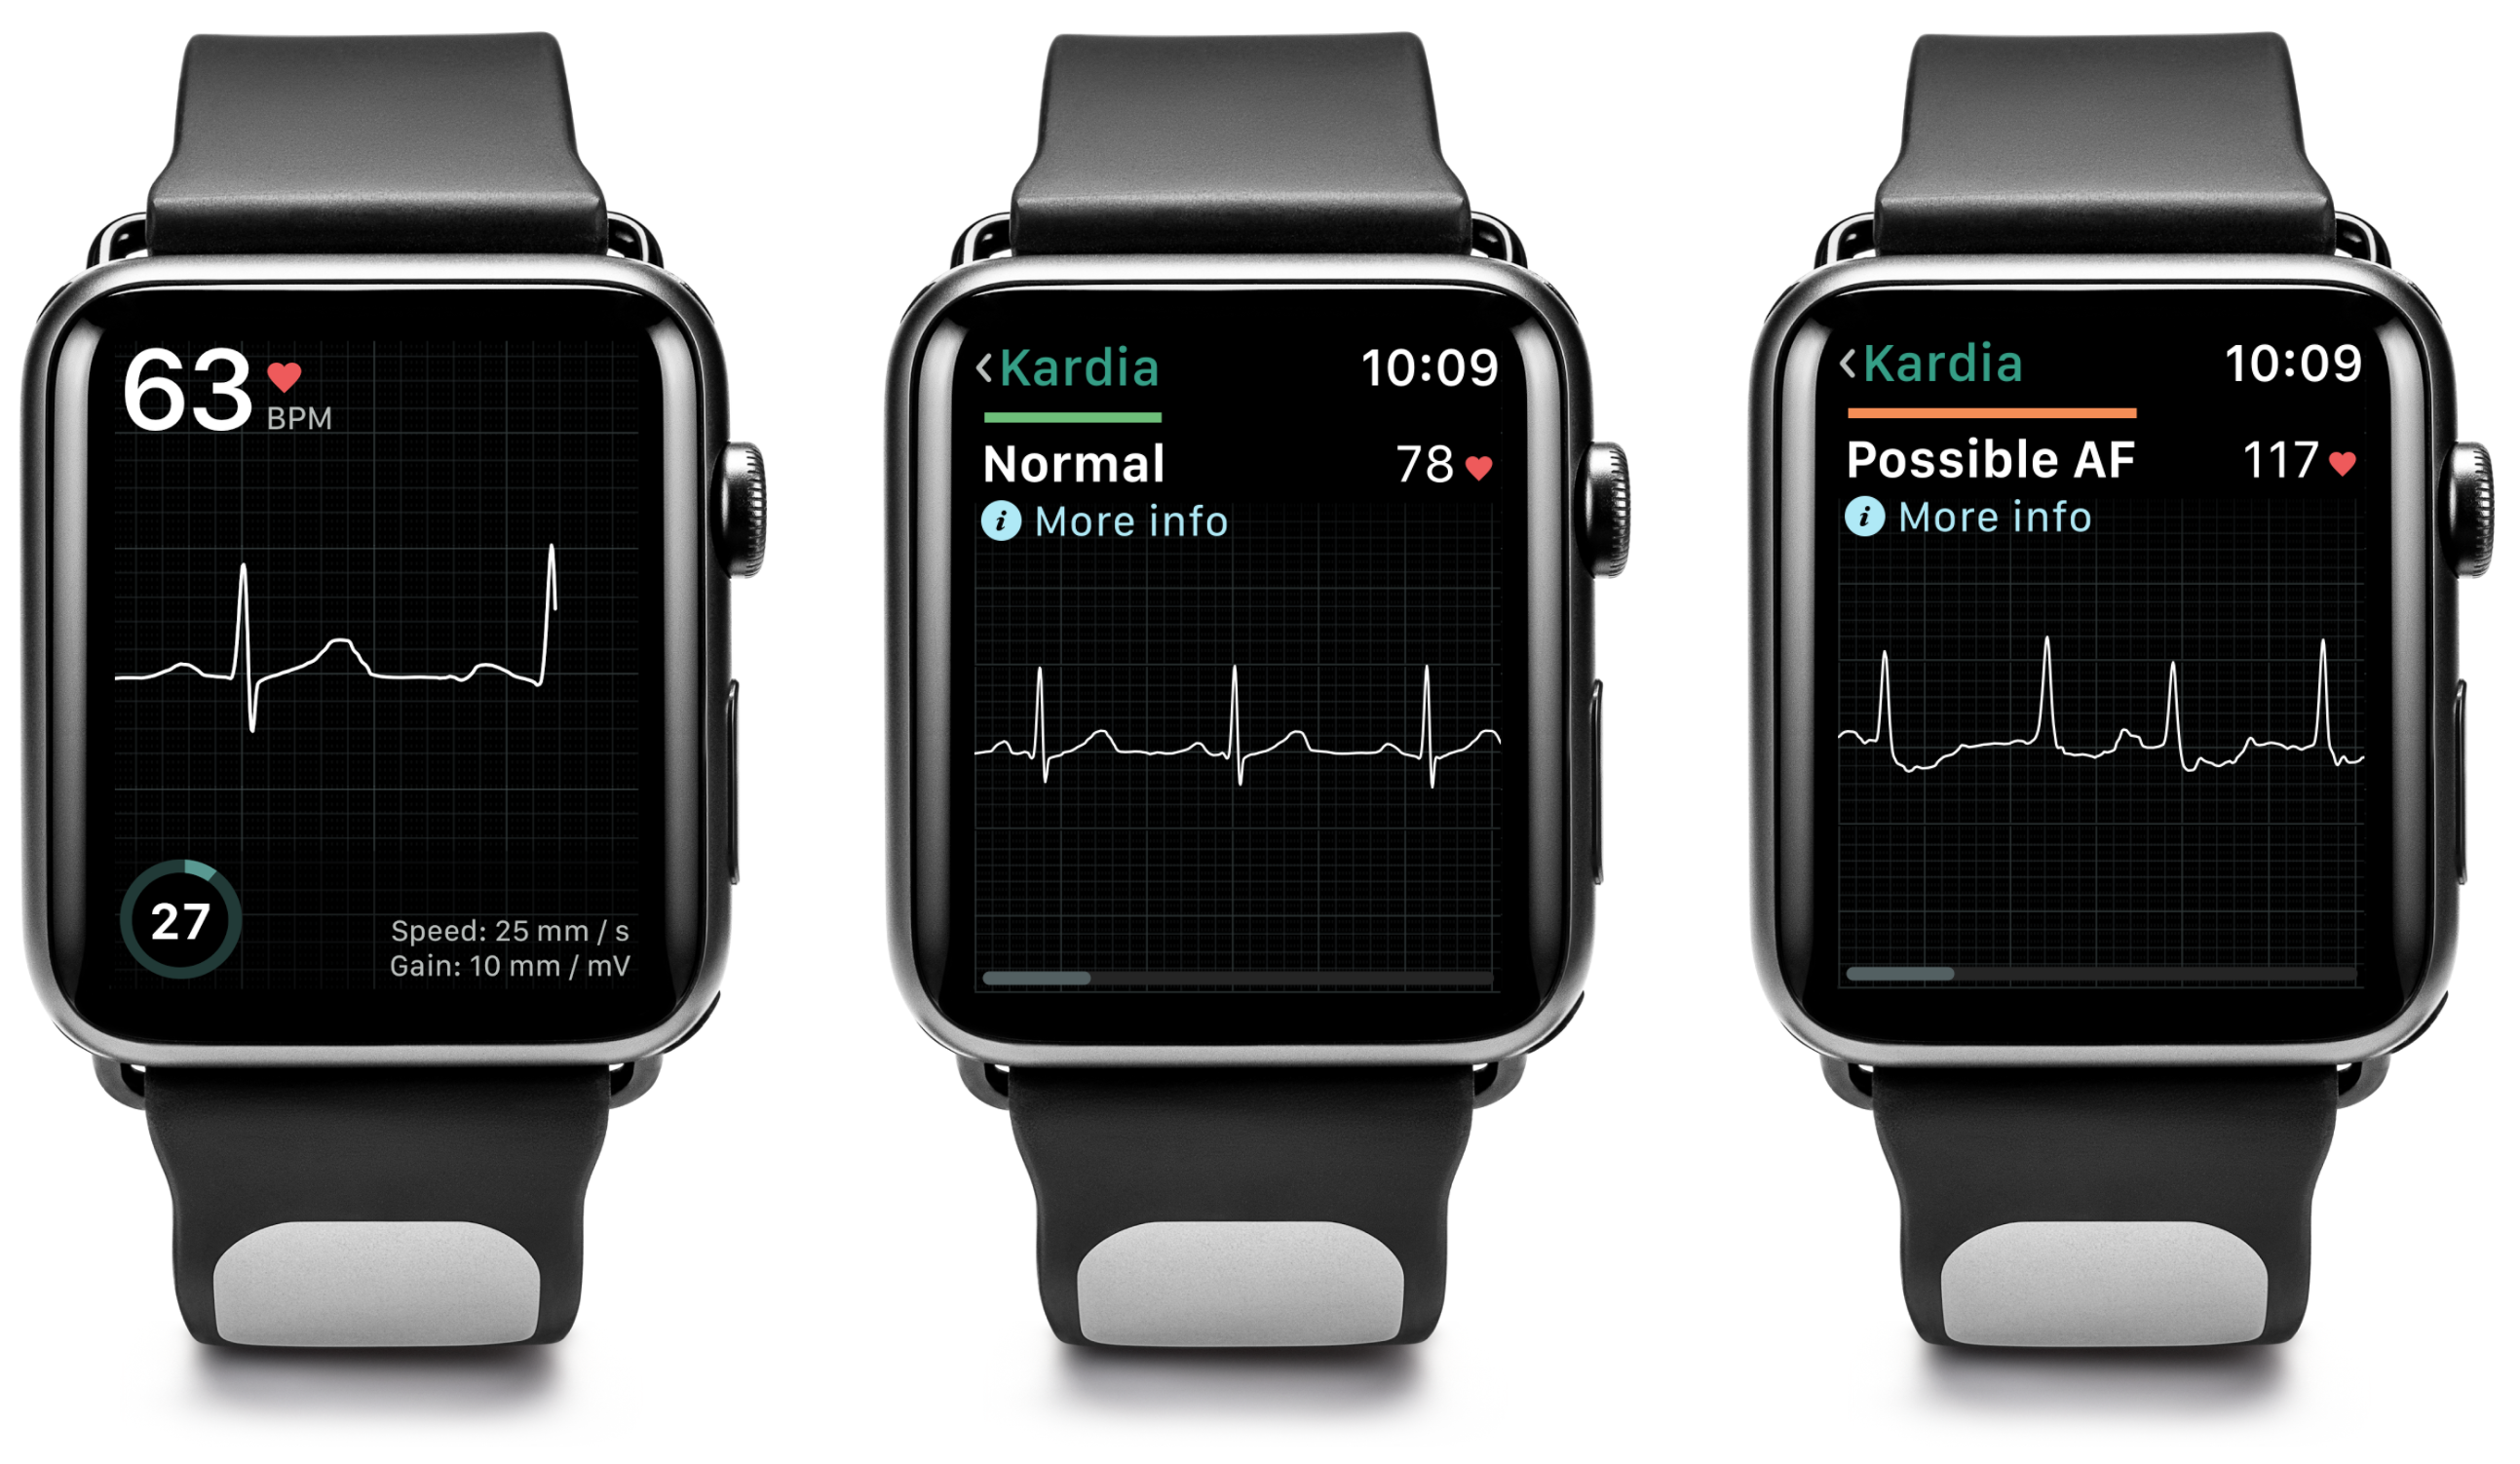 Three watch faces showing an ECG recording, a normal sinus rhythm, and possible atrial fibrillation